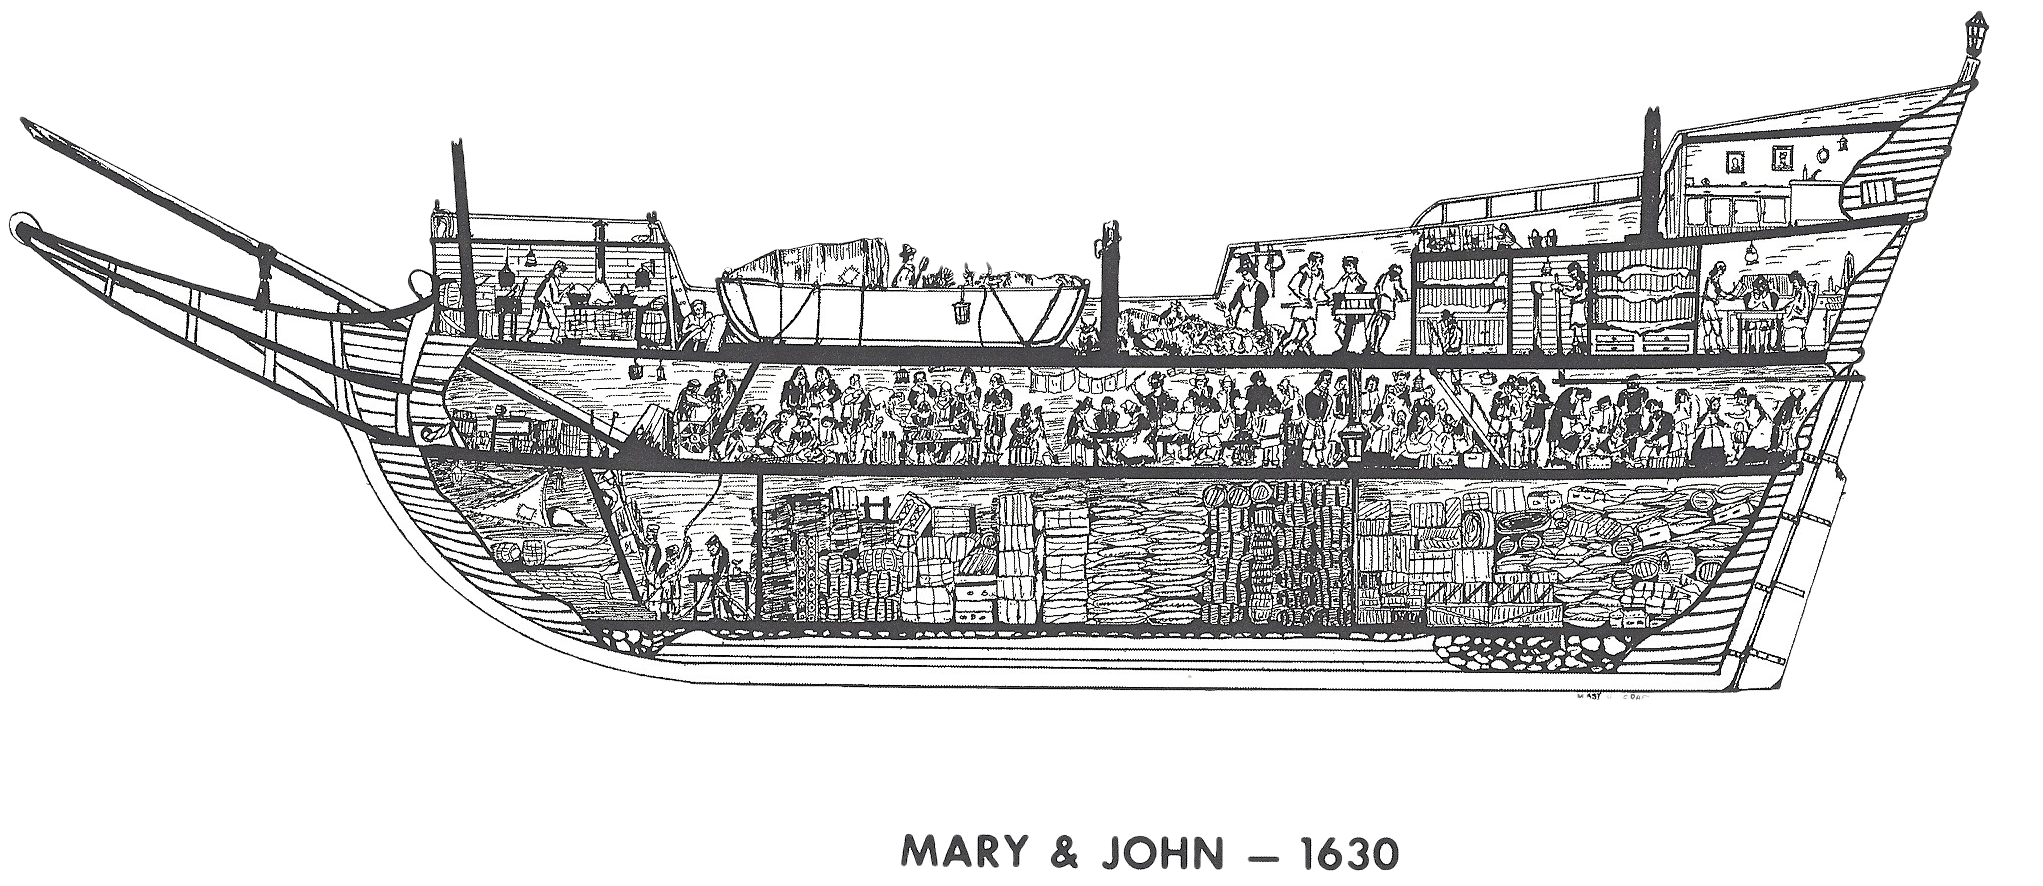 Mary and John ship line drawing